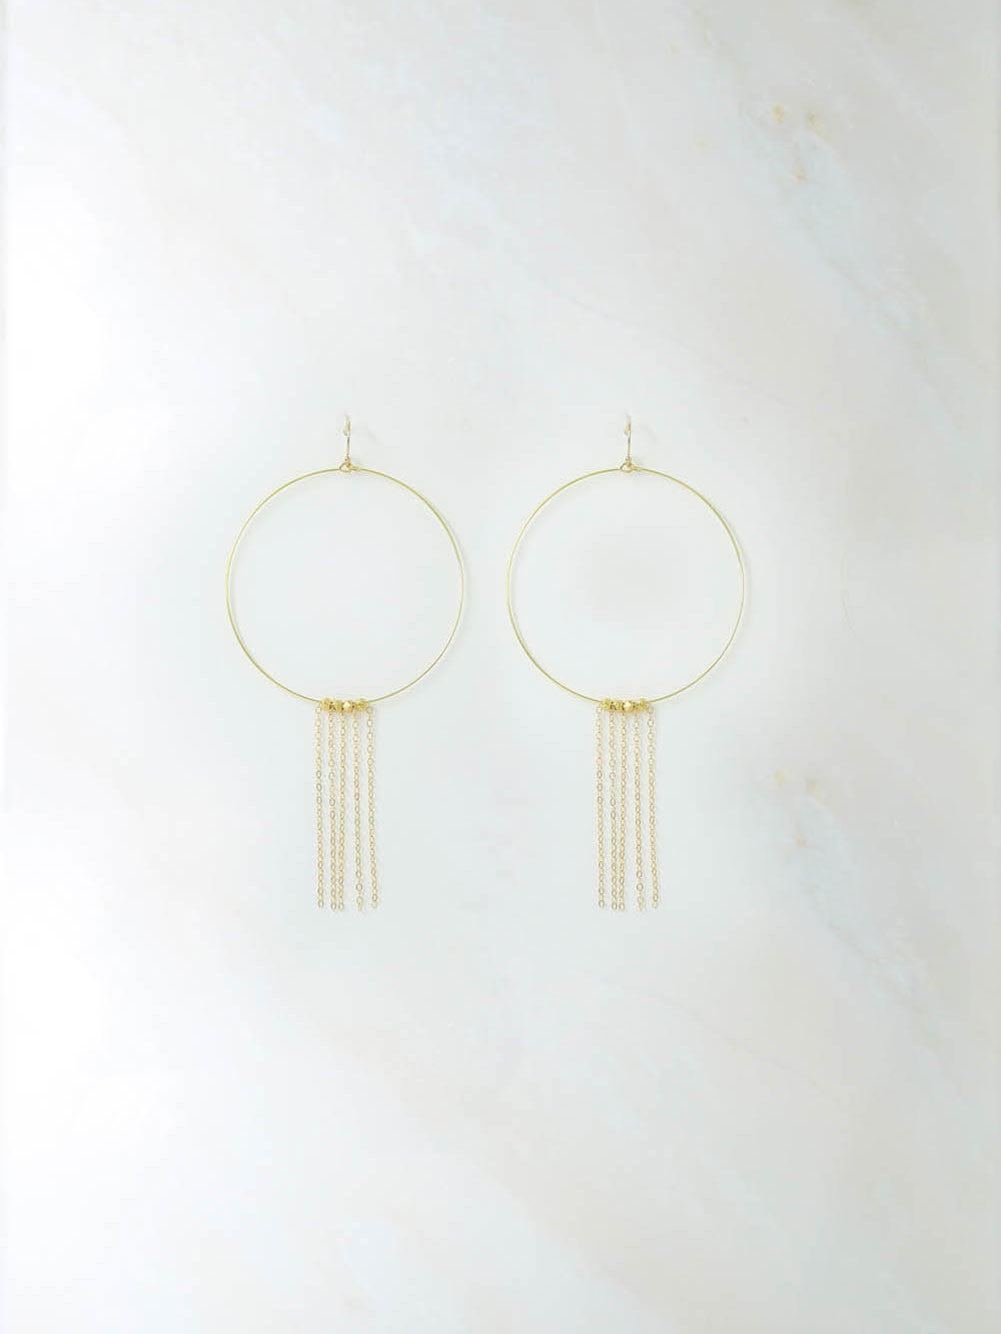 The Beat Generation Tassel Hoops